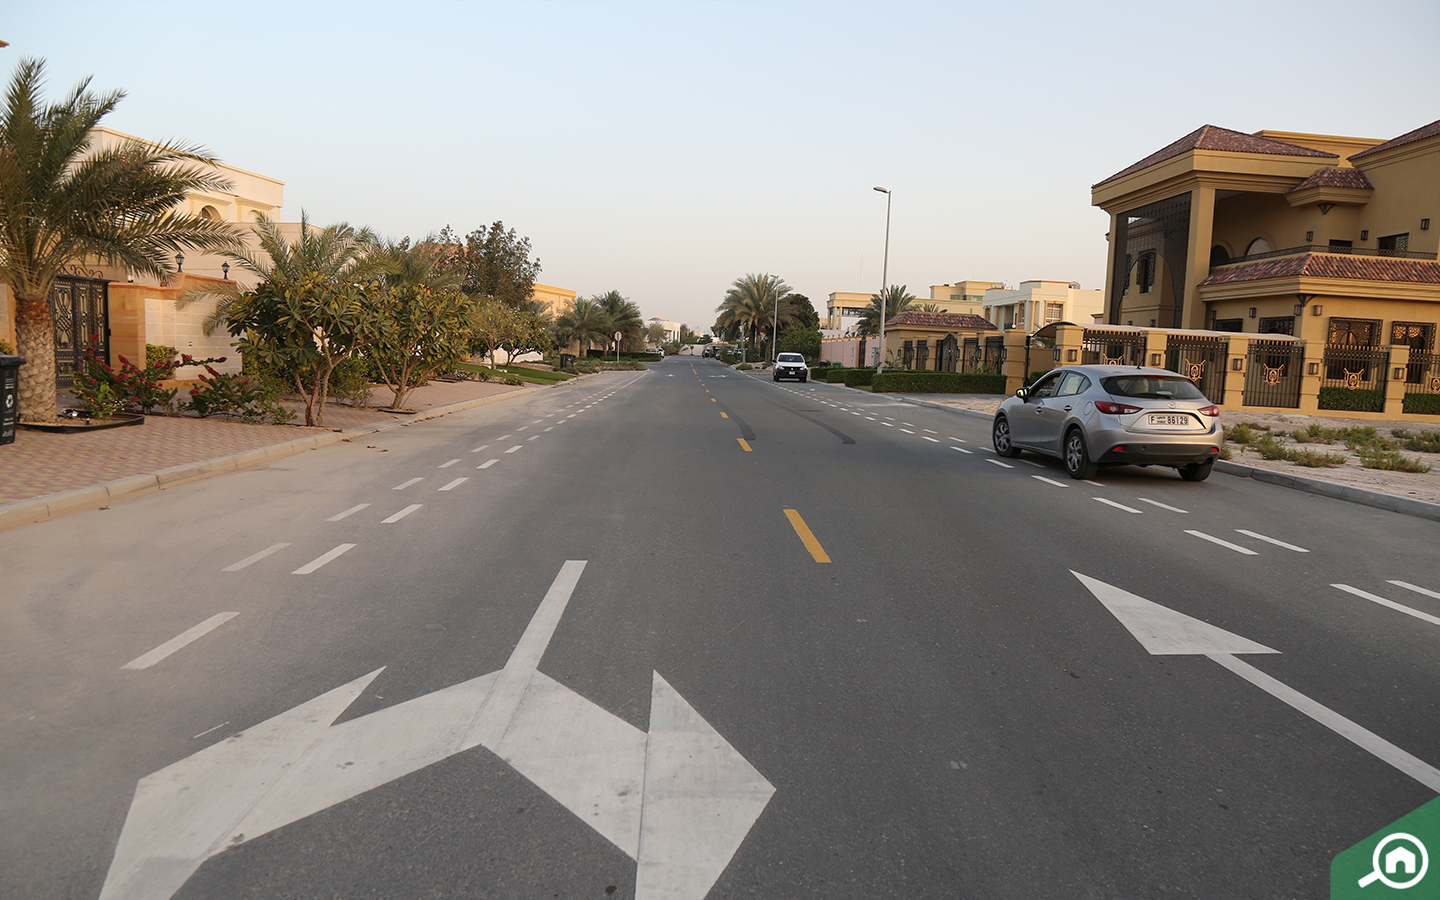 Parking in all barsha